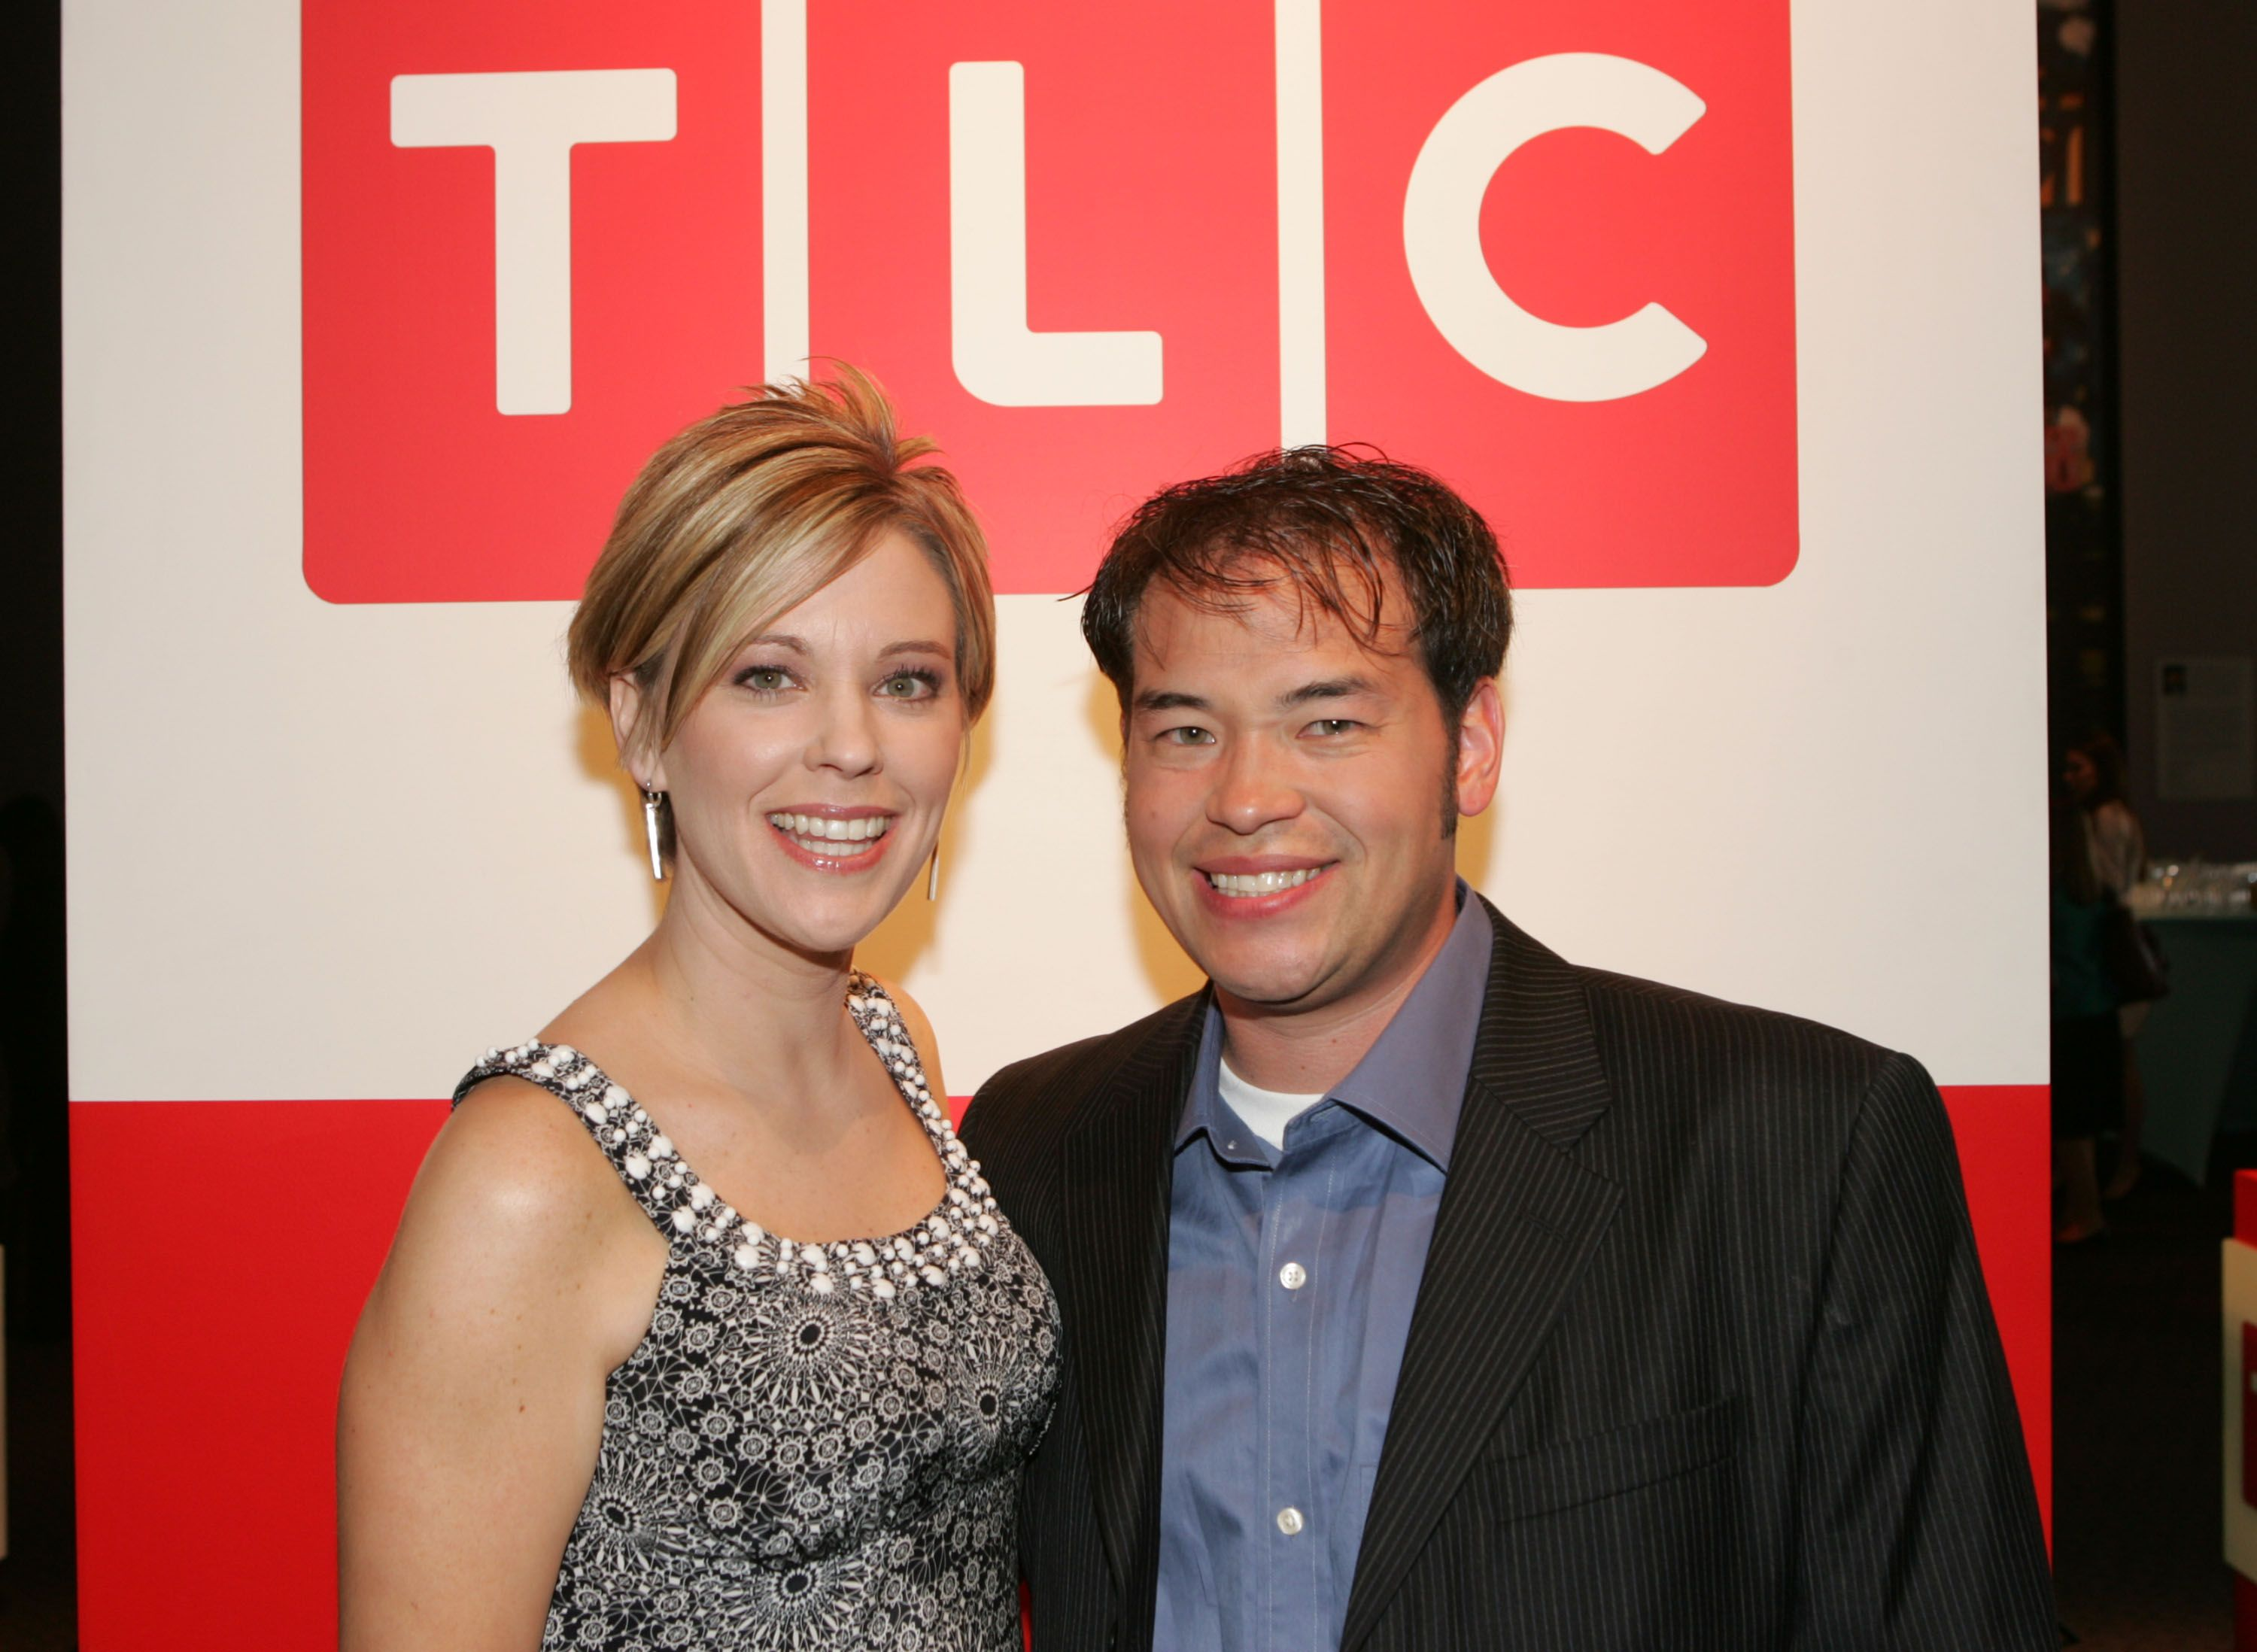 John and Kate Gosselin at the Discovery Upfront Presentation NY - Talent Images at the Frederick P. Rose Hall on April 23, 2008 | Photo: Getty Images